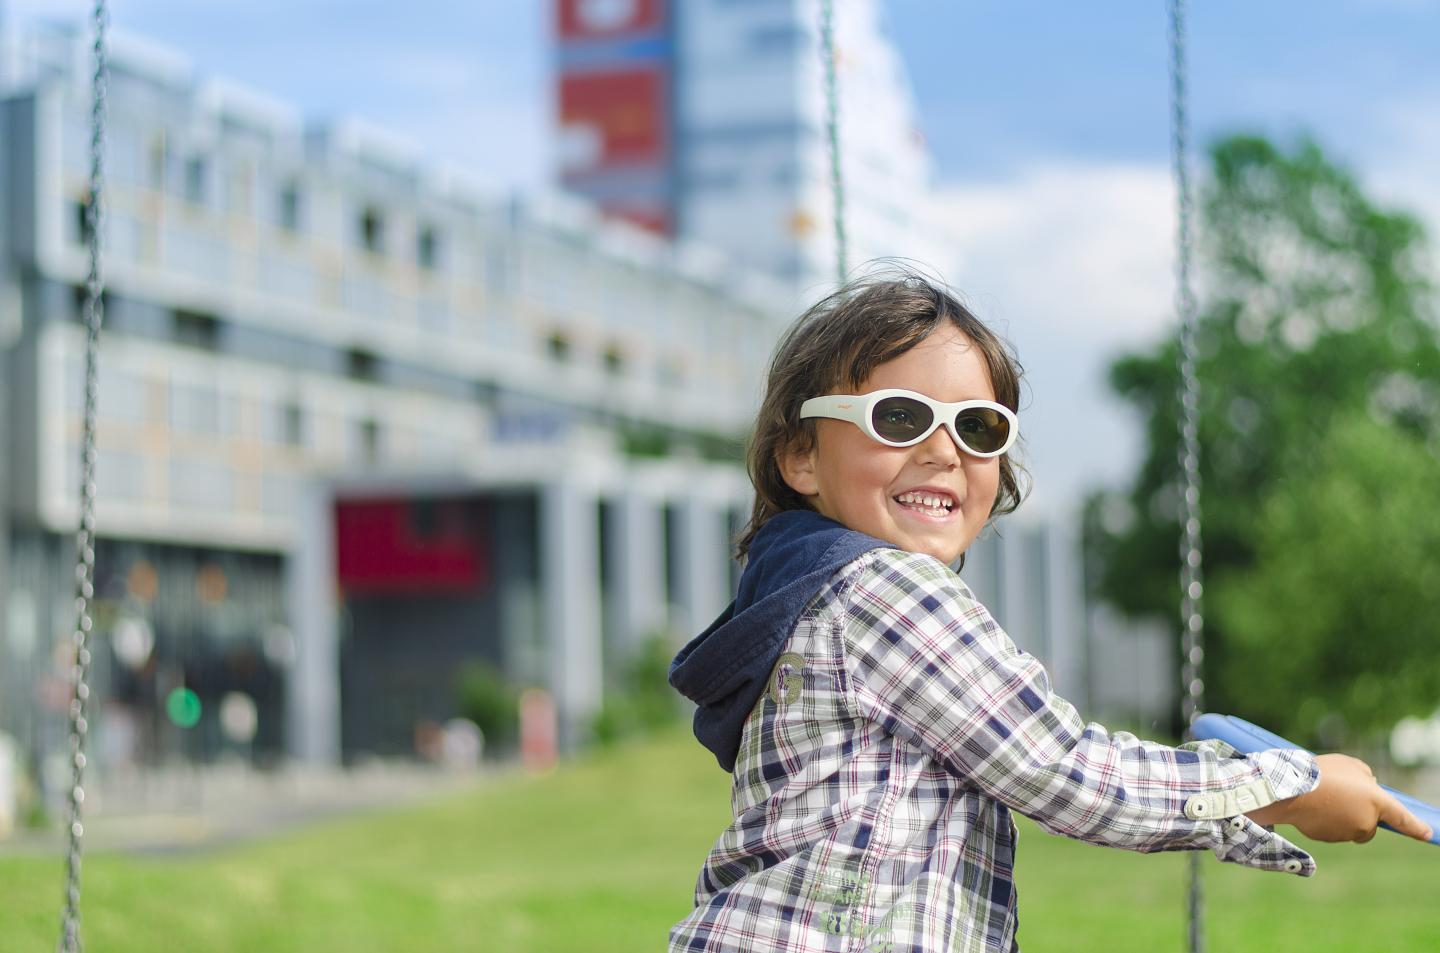 Programmable glasses wit LCD lenses could offer a more straightforward way to treat lazy eye in children